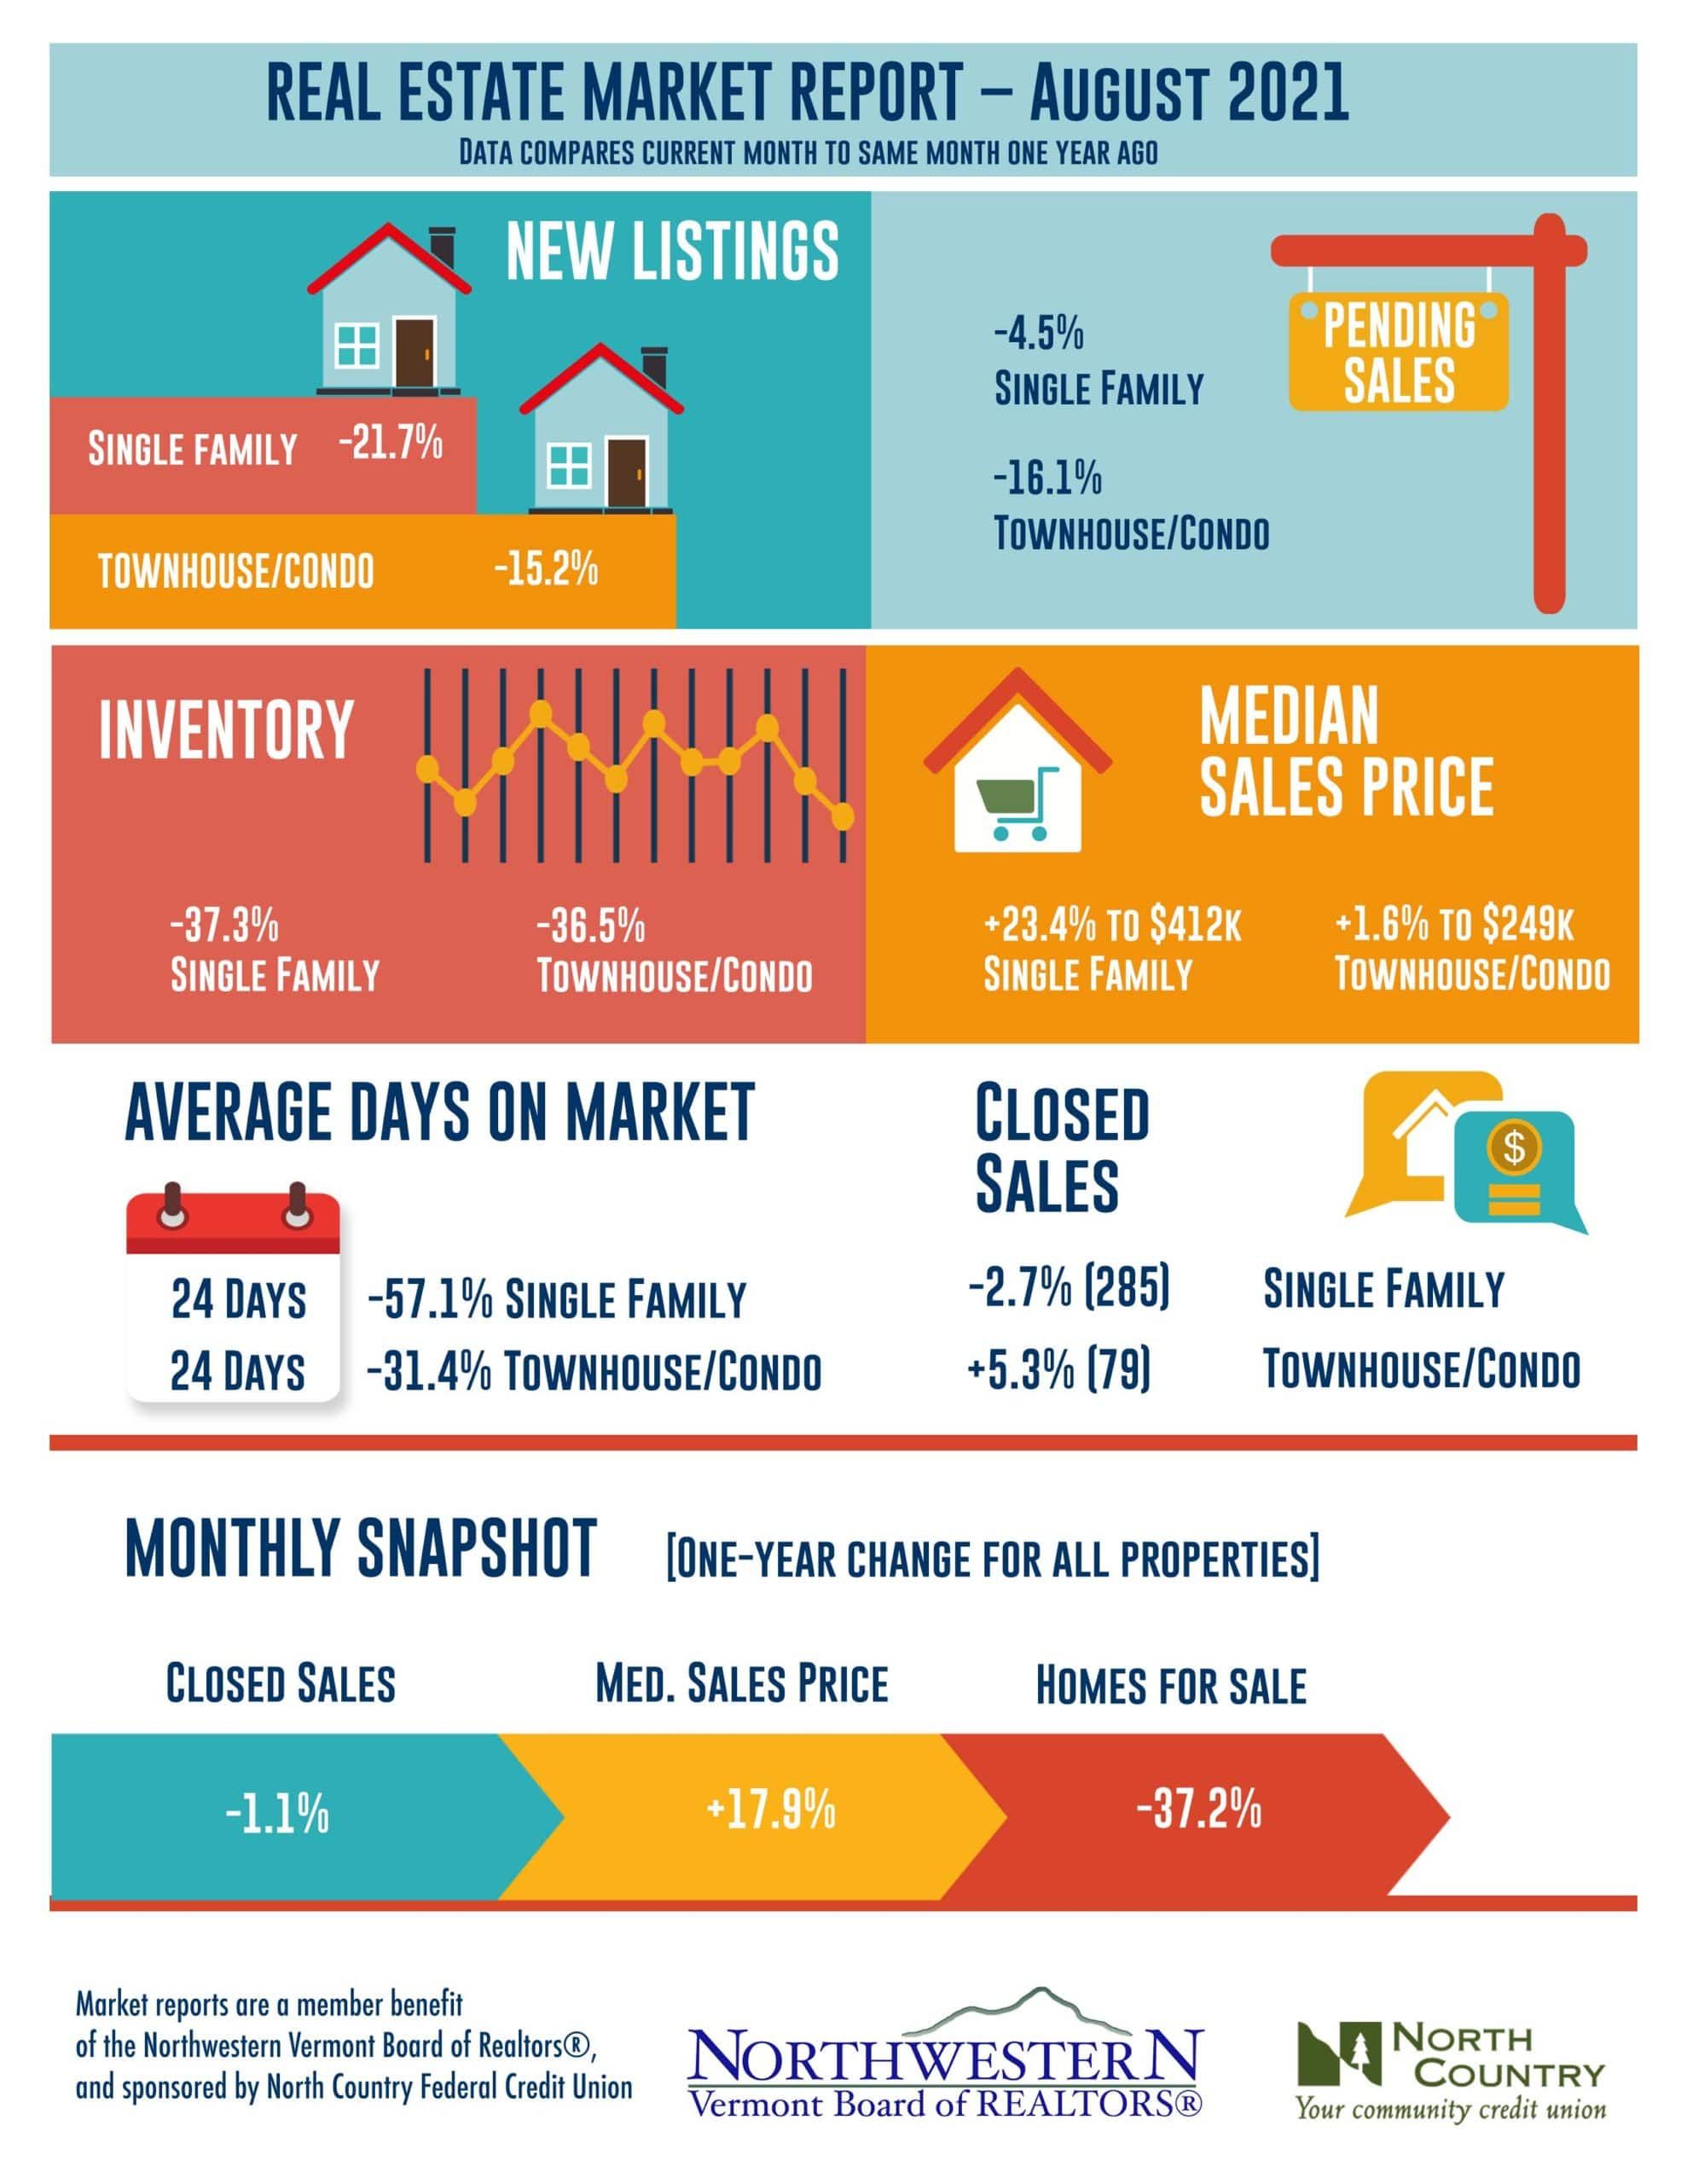 Vermont Real Estate Market Update for August 2021